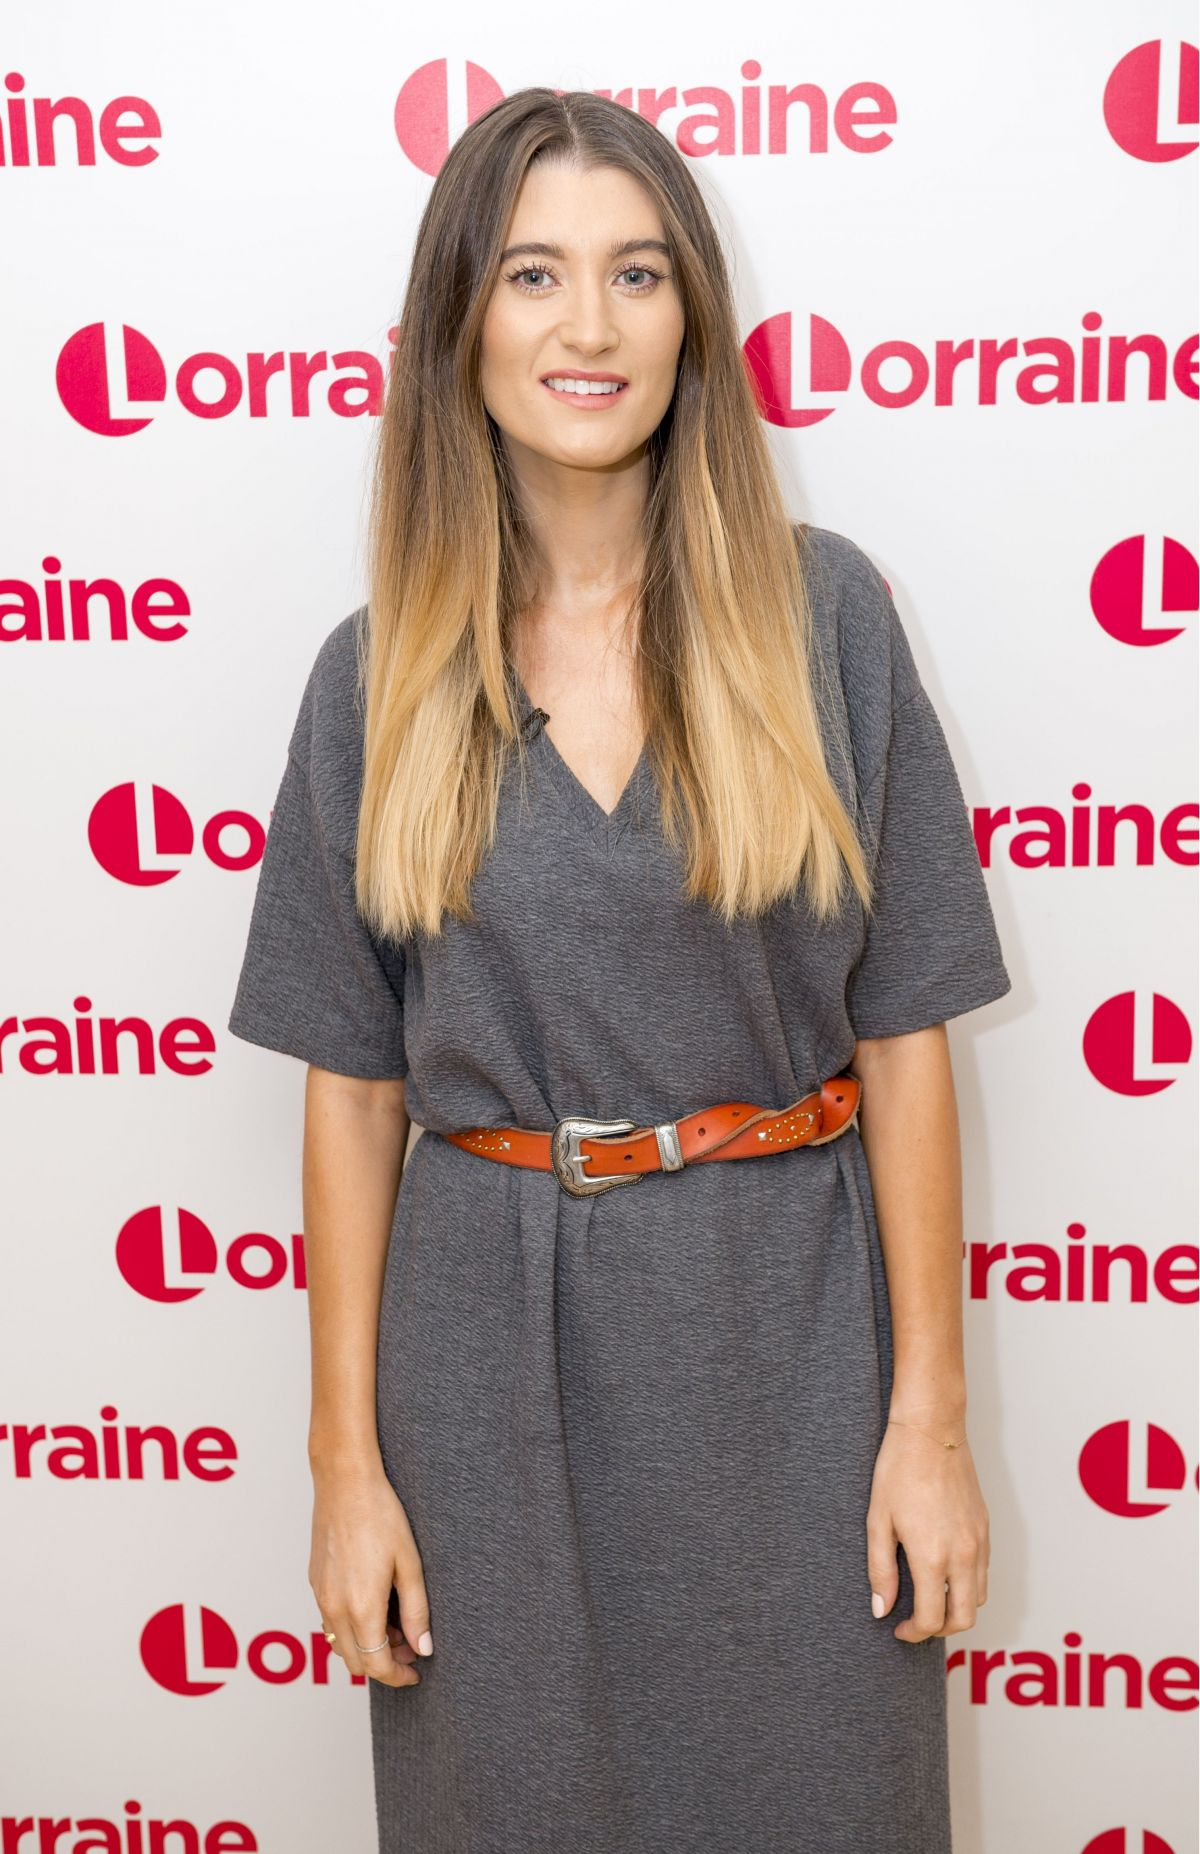 charley webb - photo #17